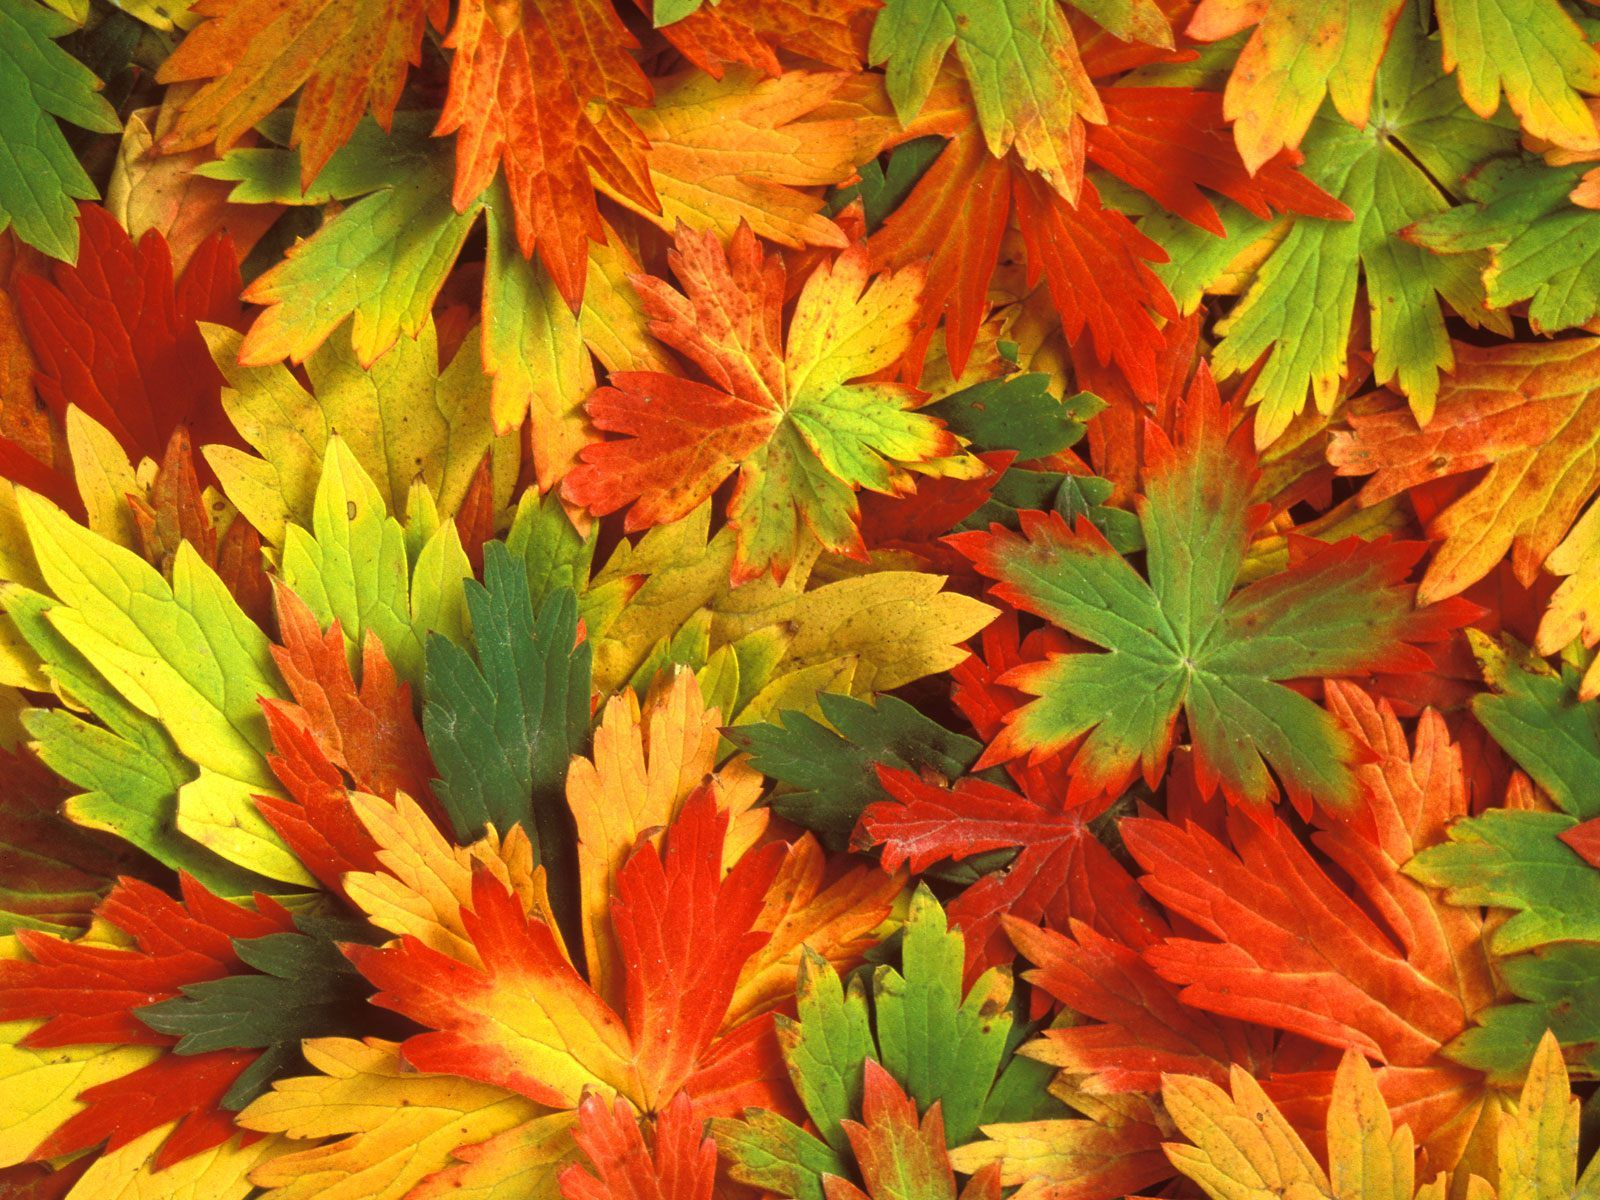 of autumn beautiful leafs autumn leaf scene fresh autumn leafs 1600x1200